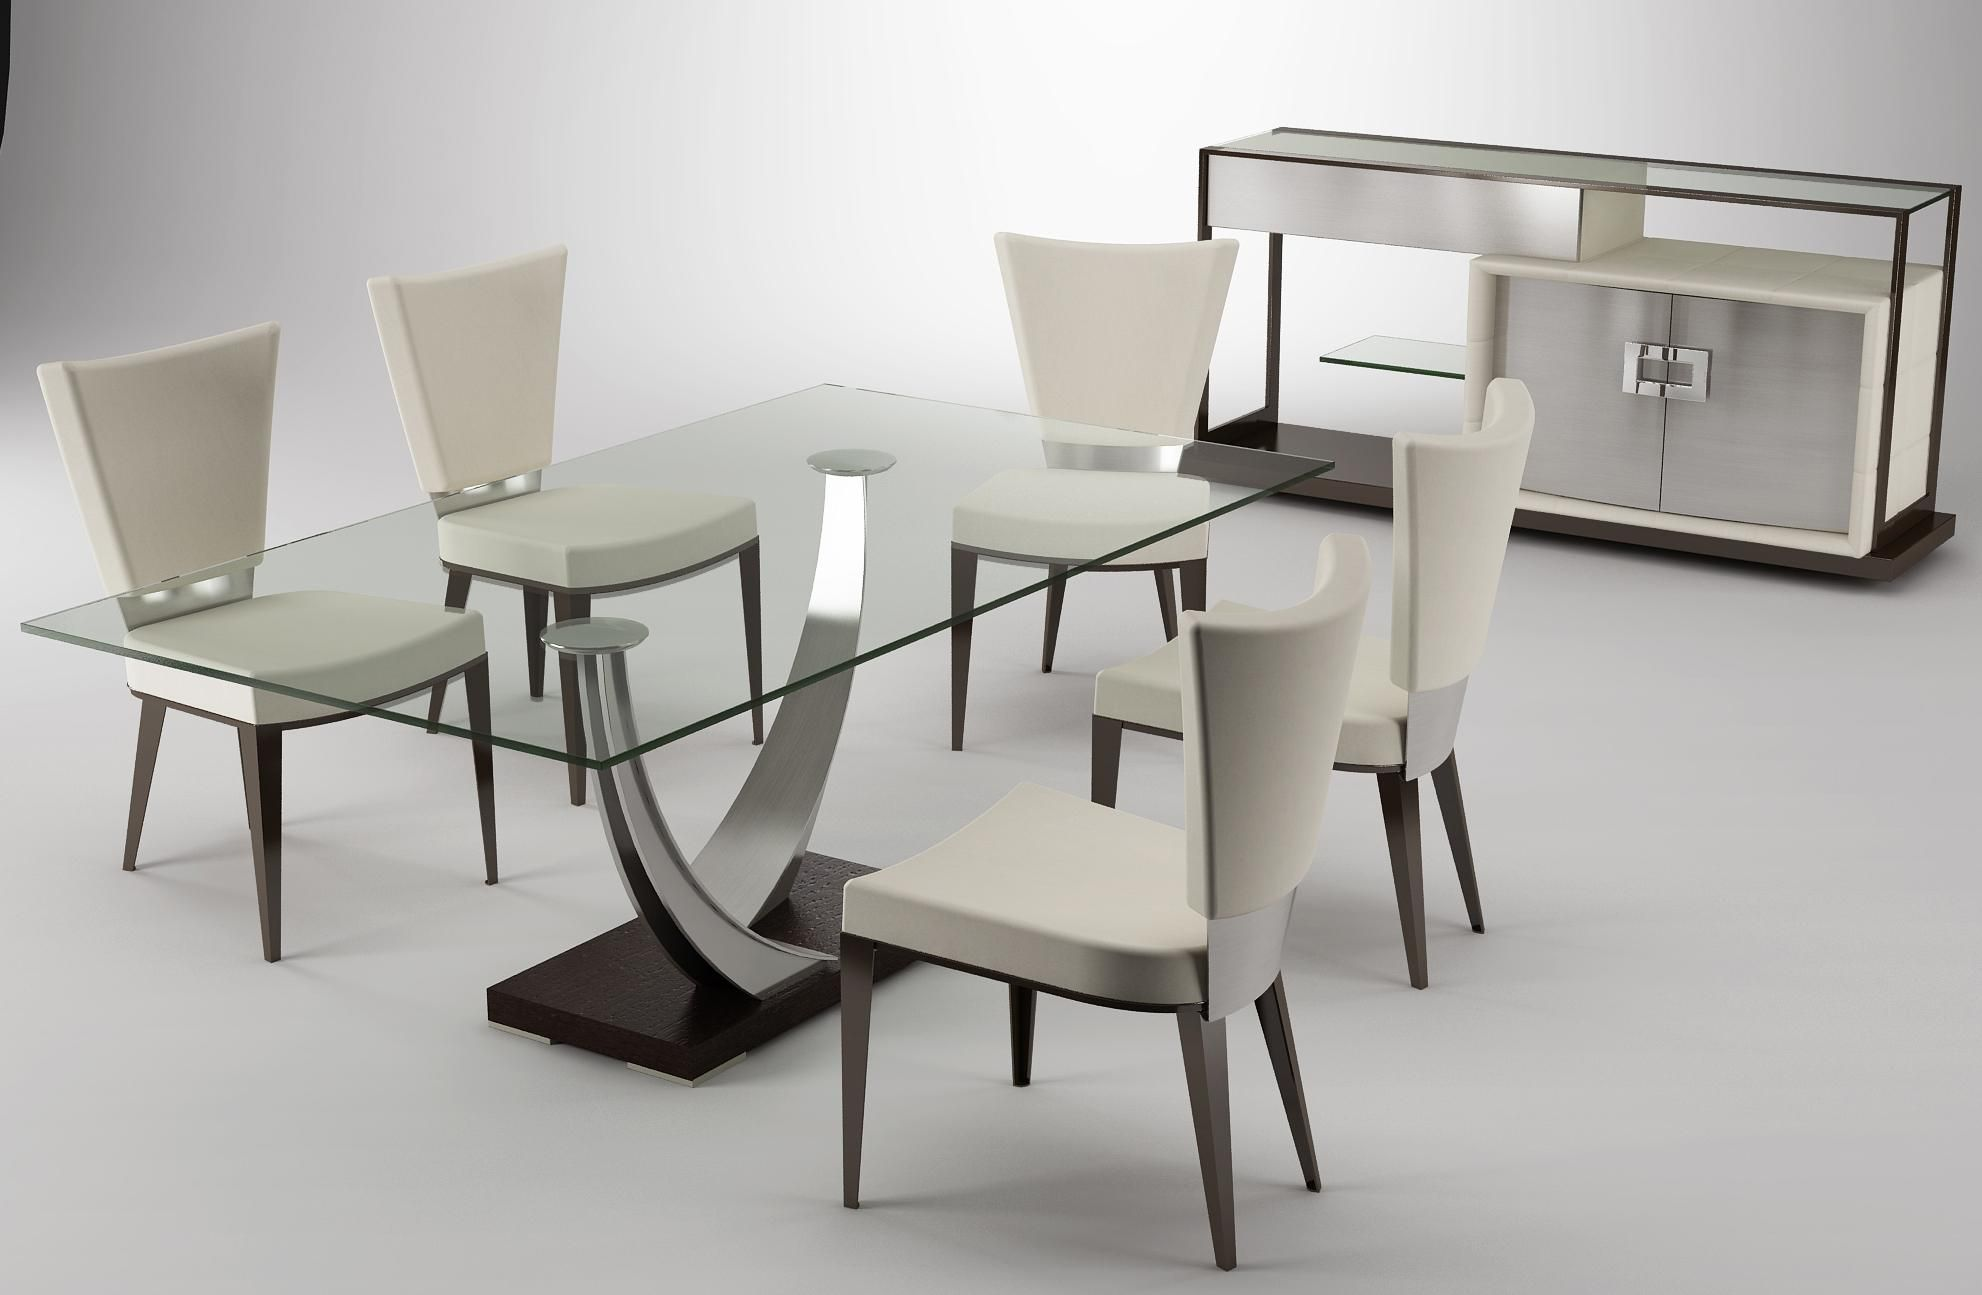 Amazing modern stylish dining room table set designs elite for Breakfast room furniture ideas